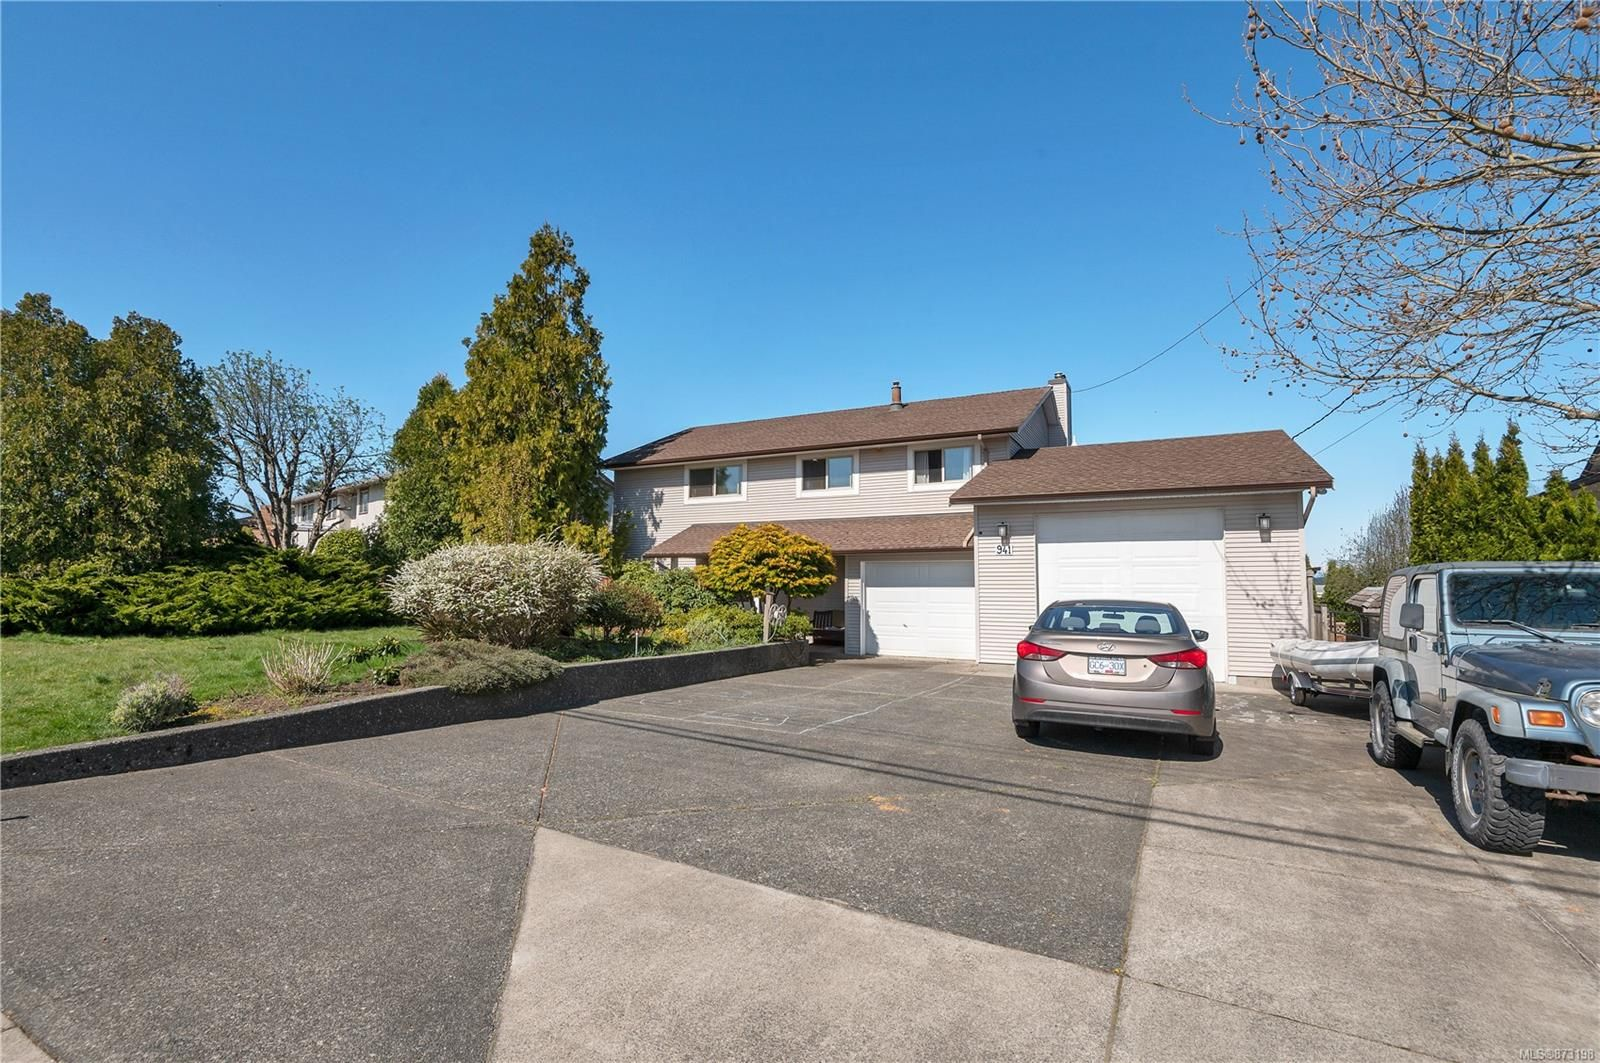 Main Photo: 941 Kalmar Rd in : CR Campbell River Central House for sale (Campbell River)  : MLS®# 873198